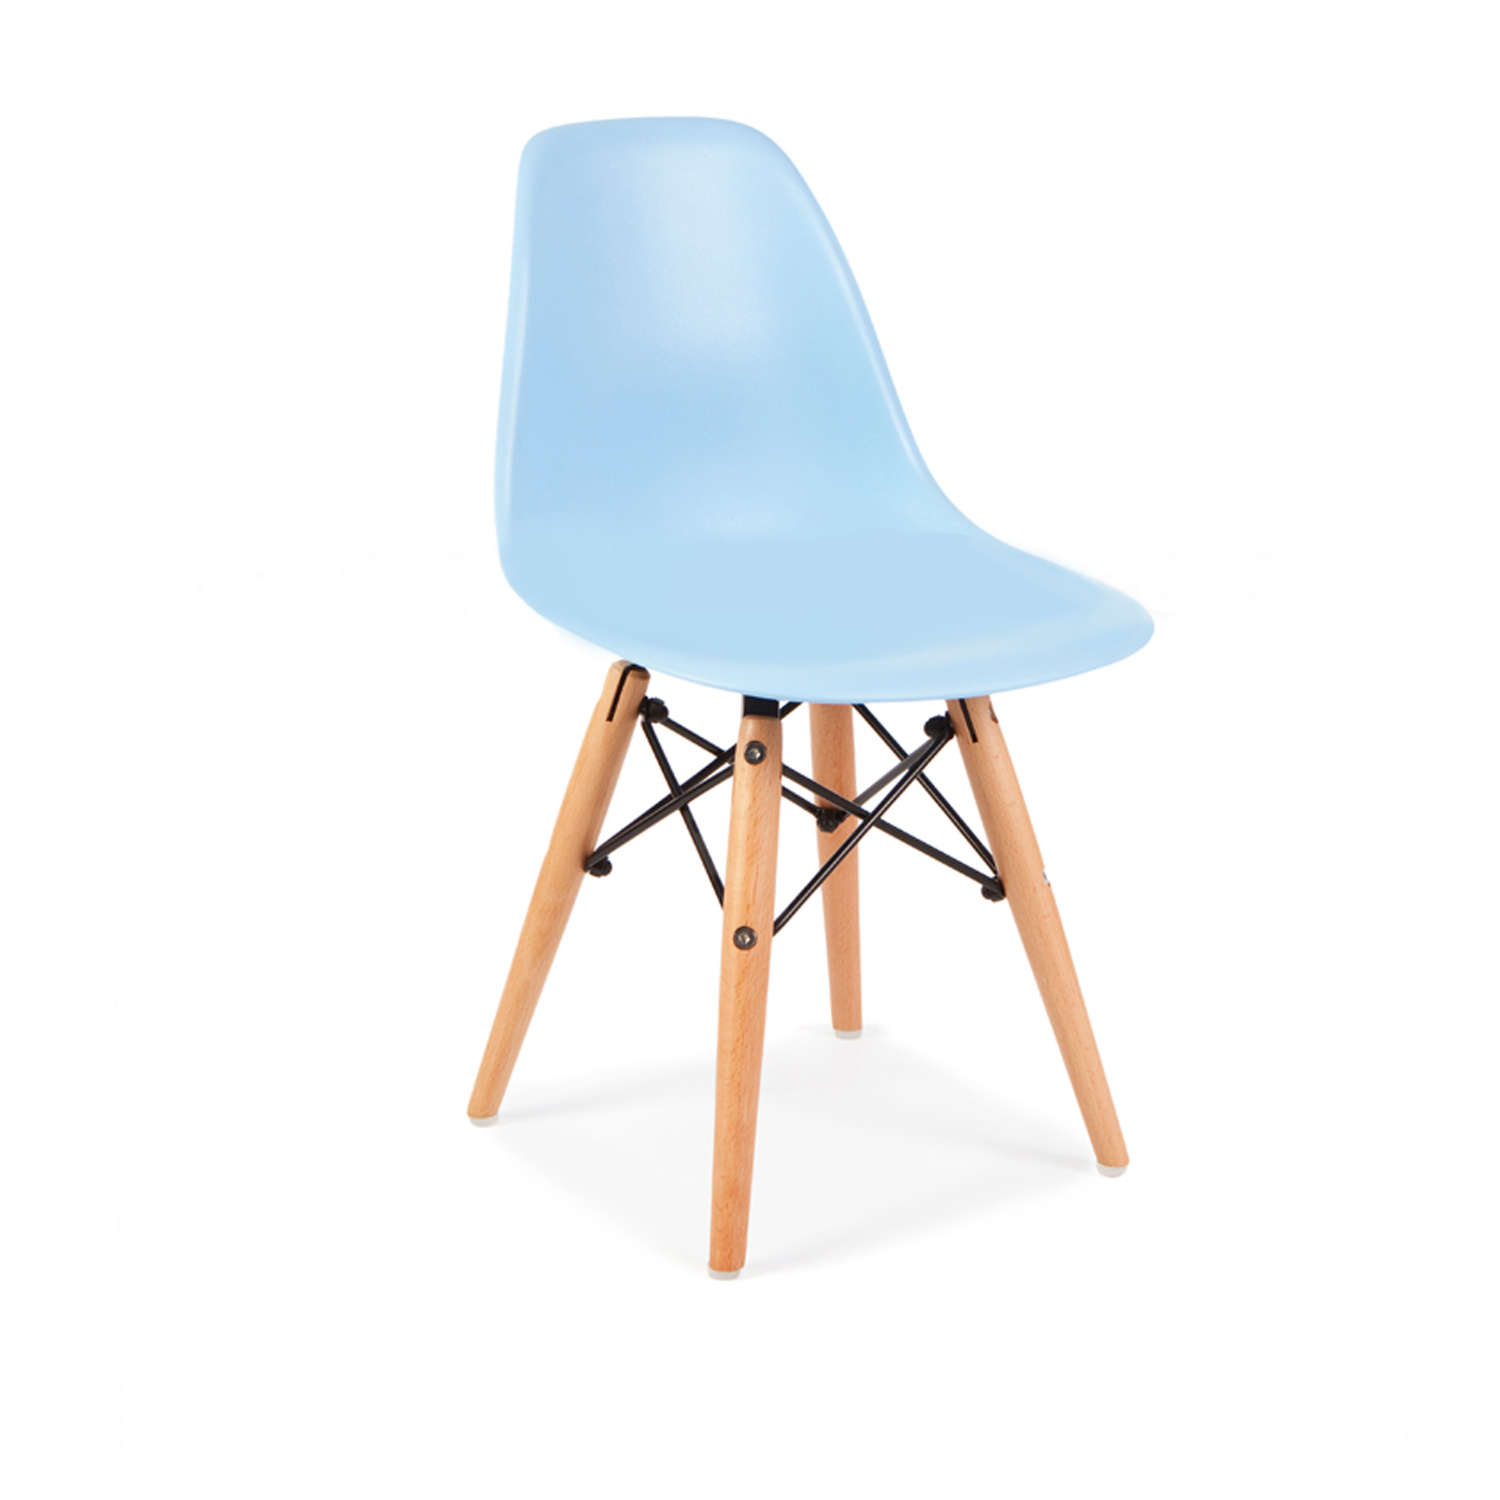 Replica Eames Eiffel Kids Chair Clever Little Monkey.